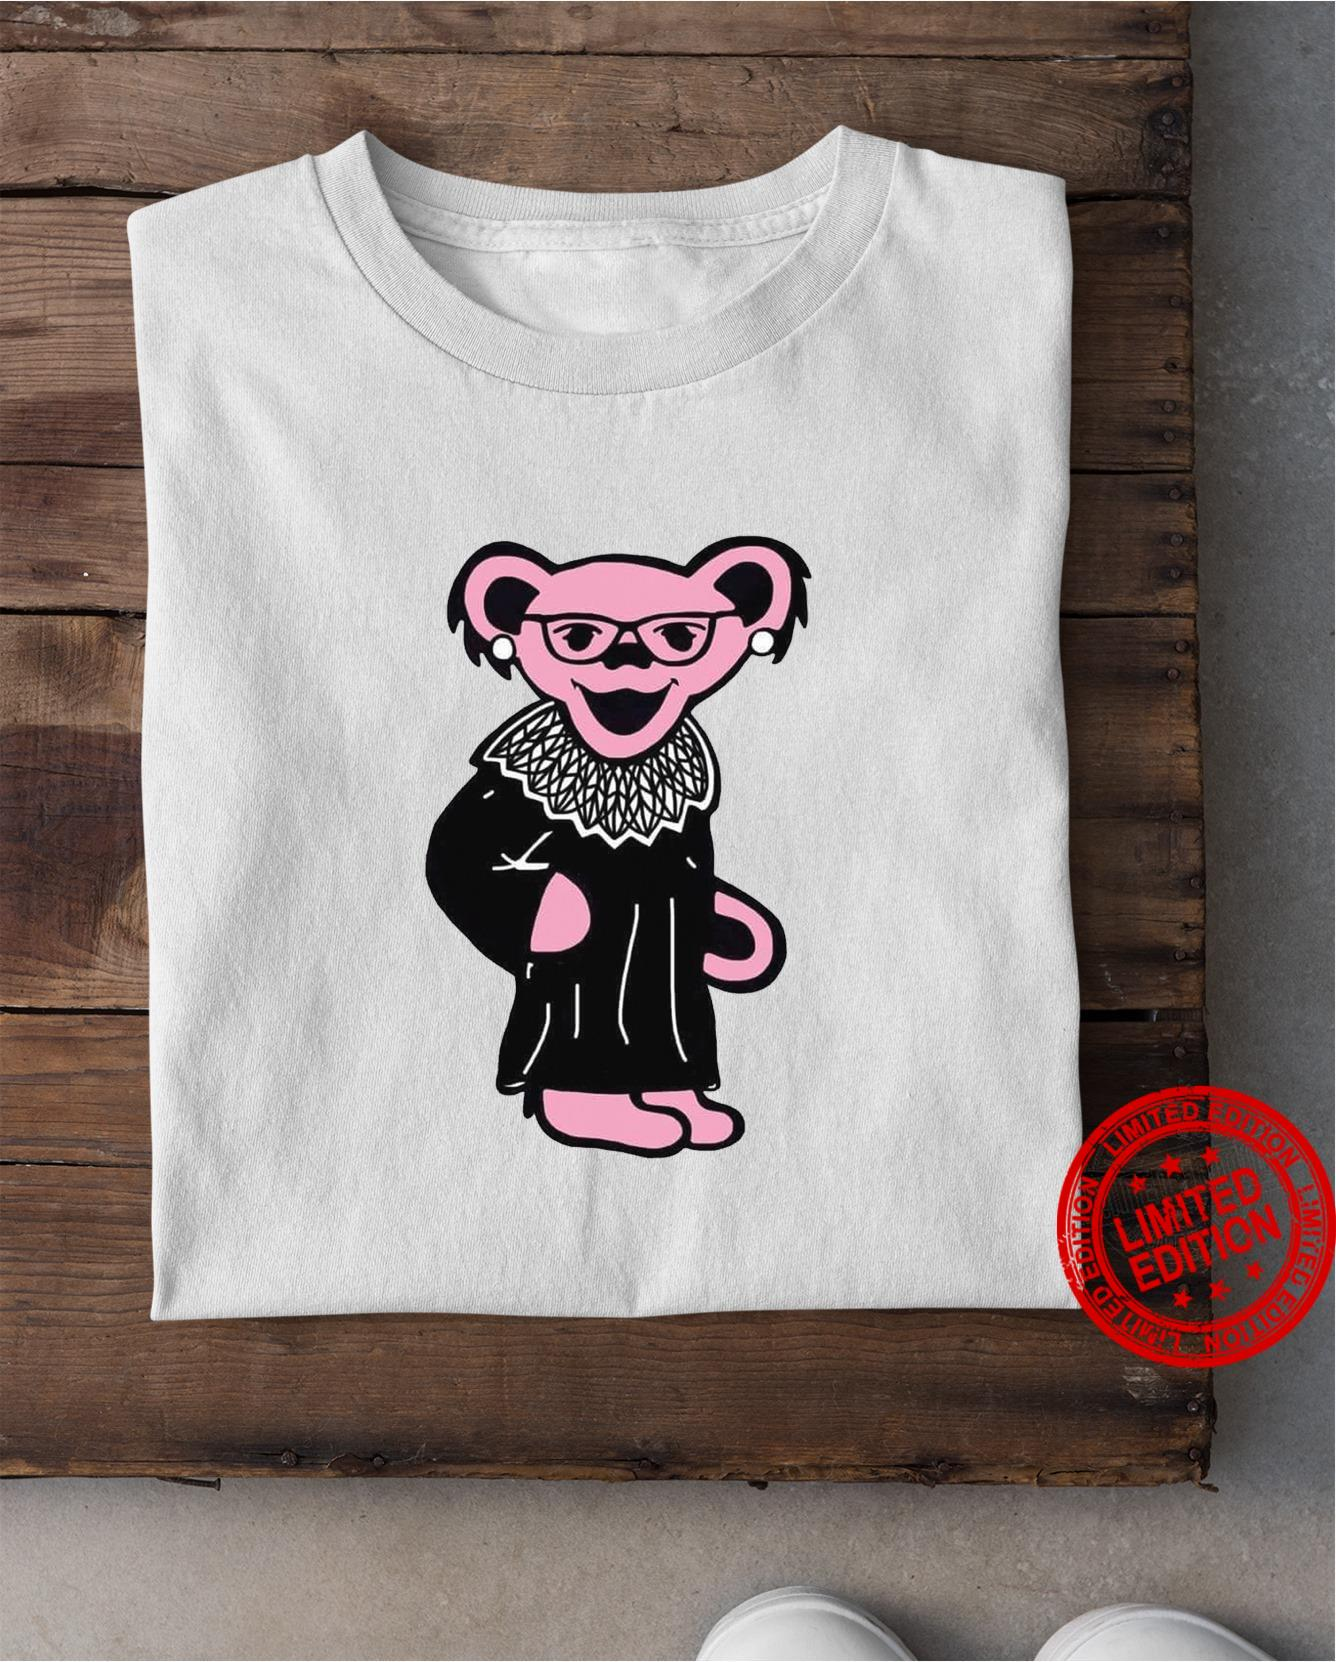 Pink Parther In RBG Shirt